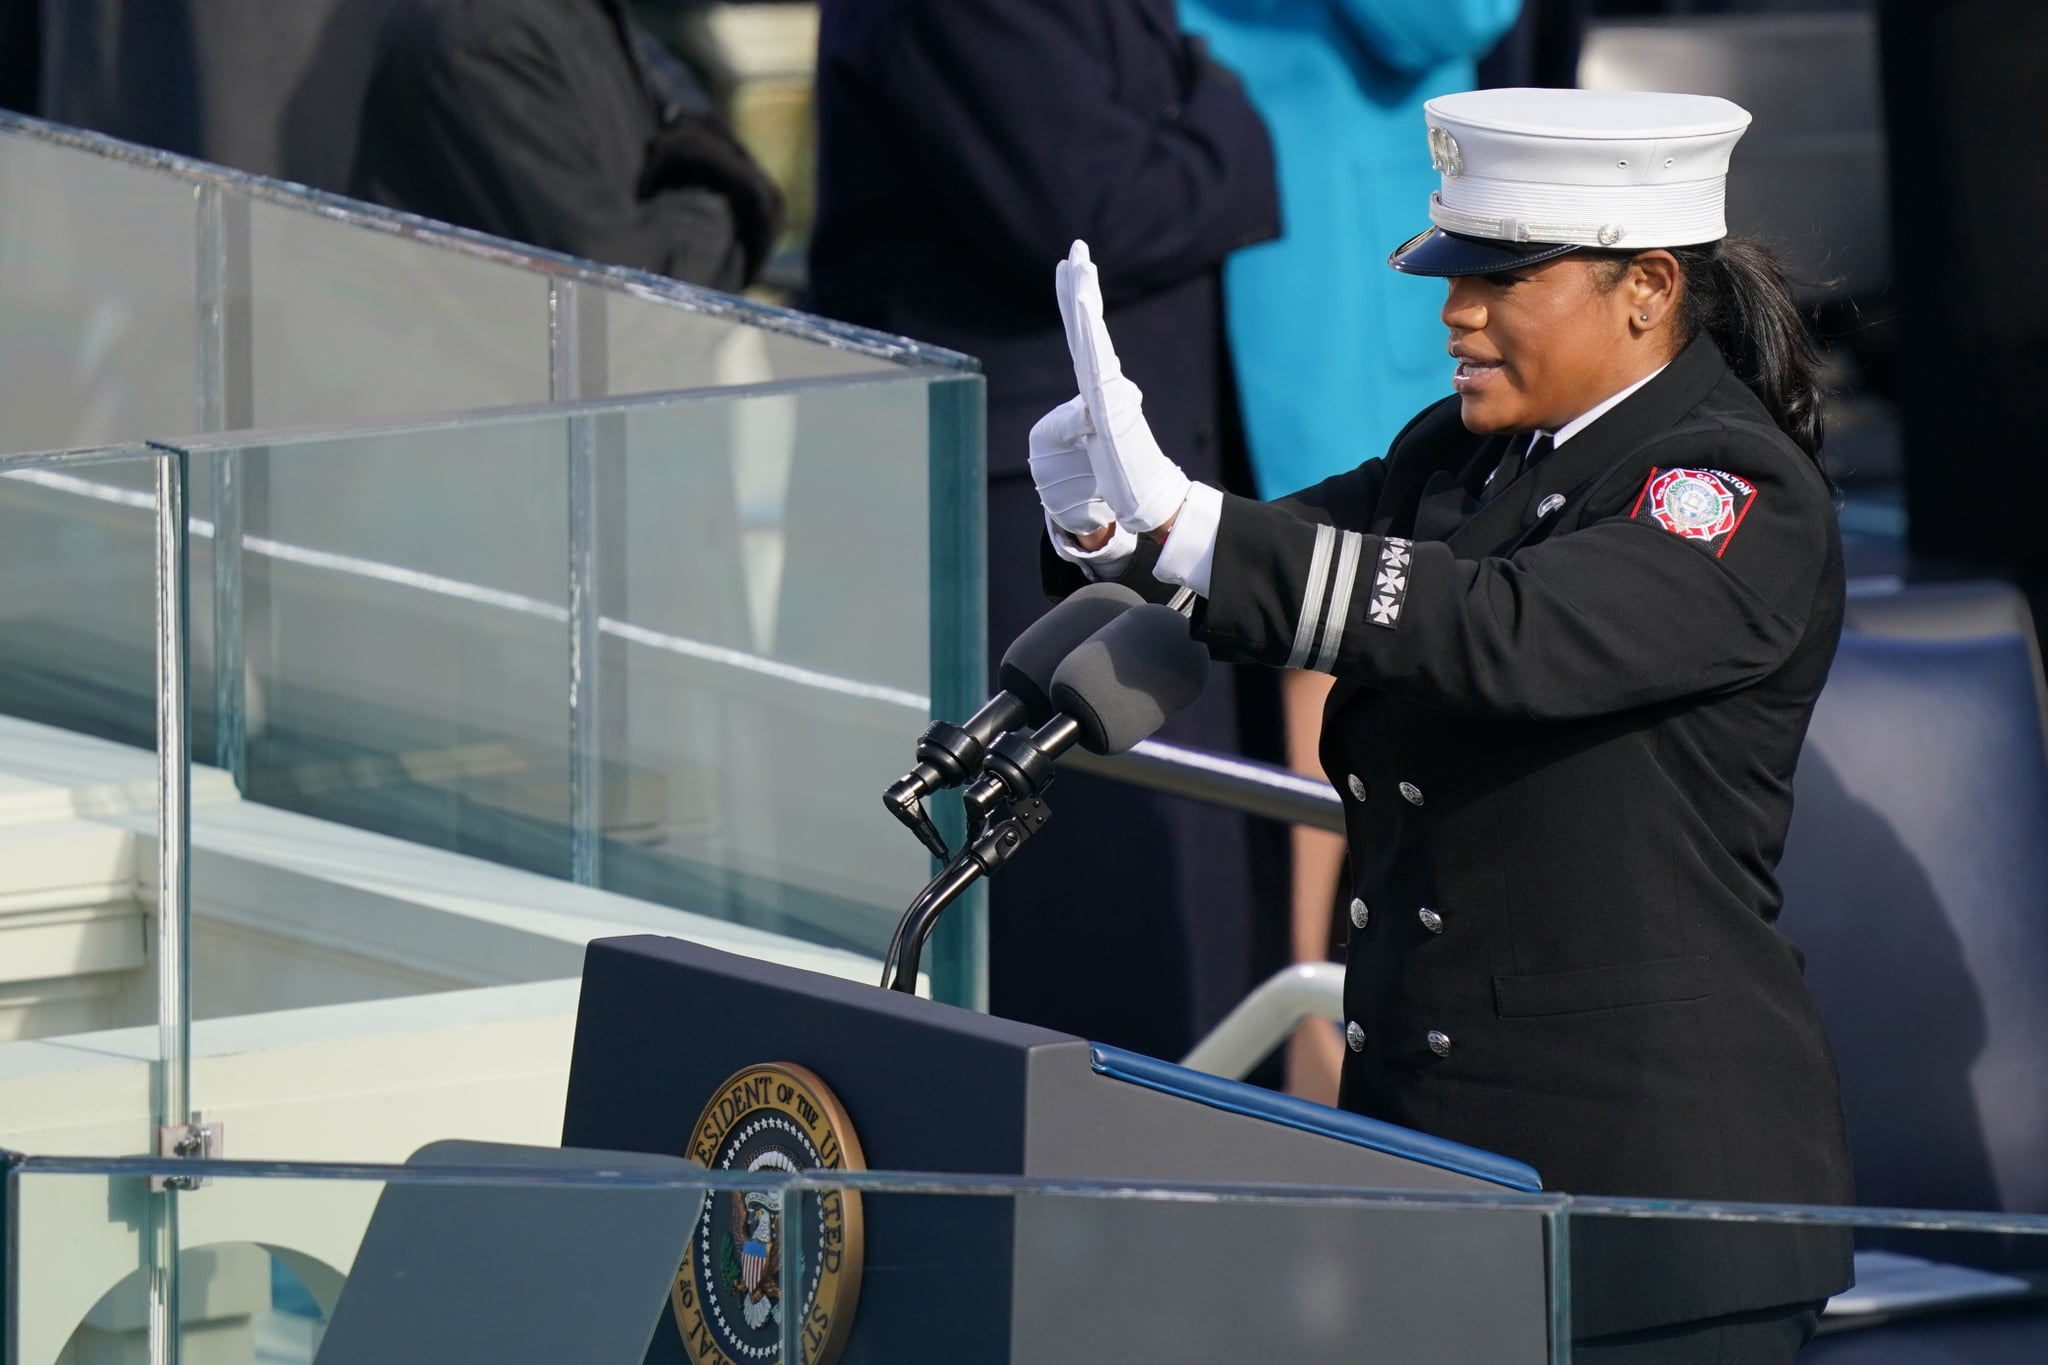 WASHINGTON, DC - JANUARY 20: Capt. Andrea Hall delivers the pledge of allegiance during the inauguration of U.S. President-elect Joe Biden on the West Front of the U.S. Capitol on January 20, 2021 in Washington, DC.  During today's inauguration ceremony Joe Biden becomes the 46th president of the United States. (Photo by Erin Schaff-Pool/Getty Images)